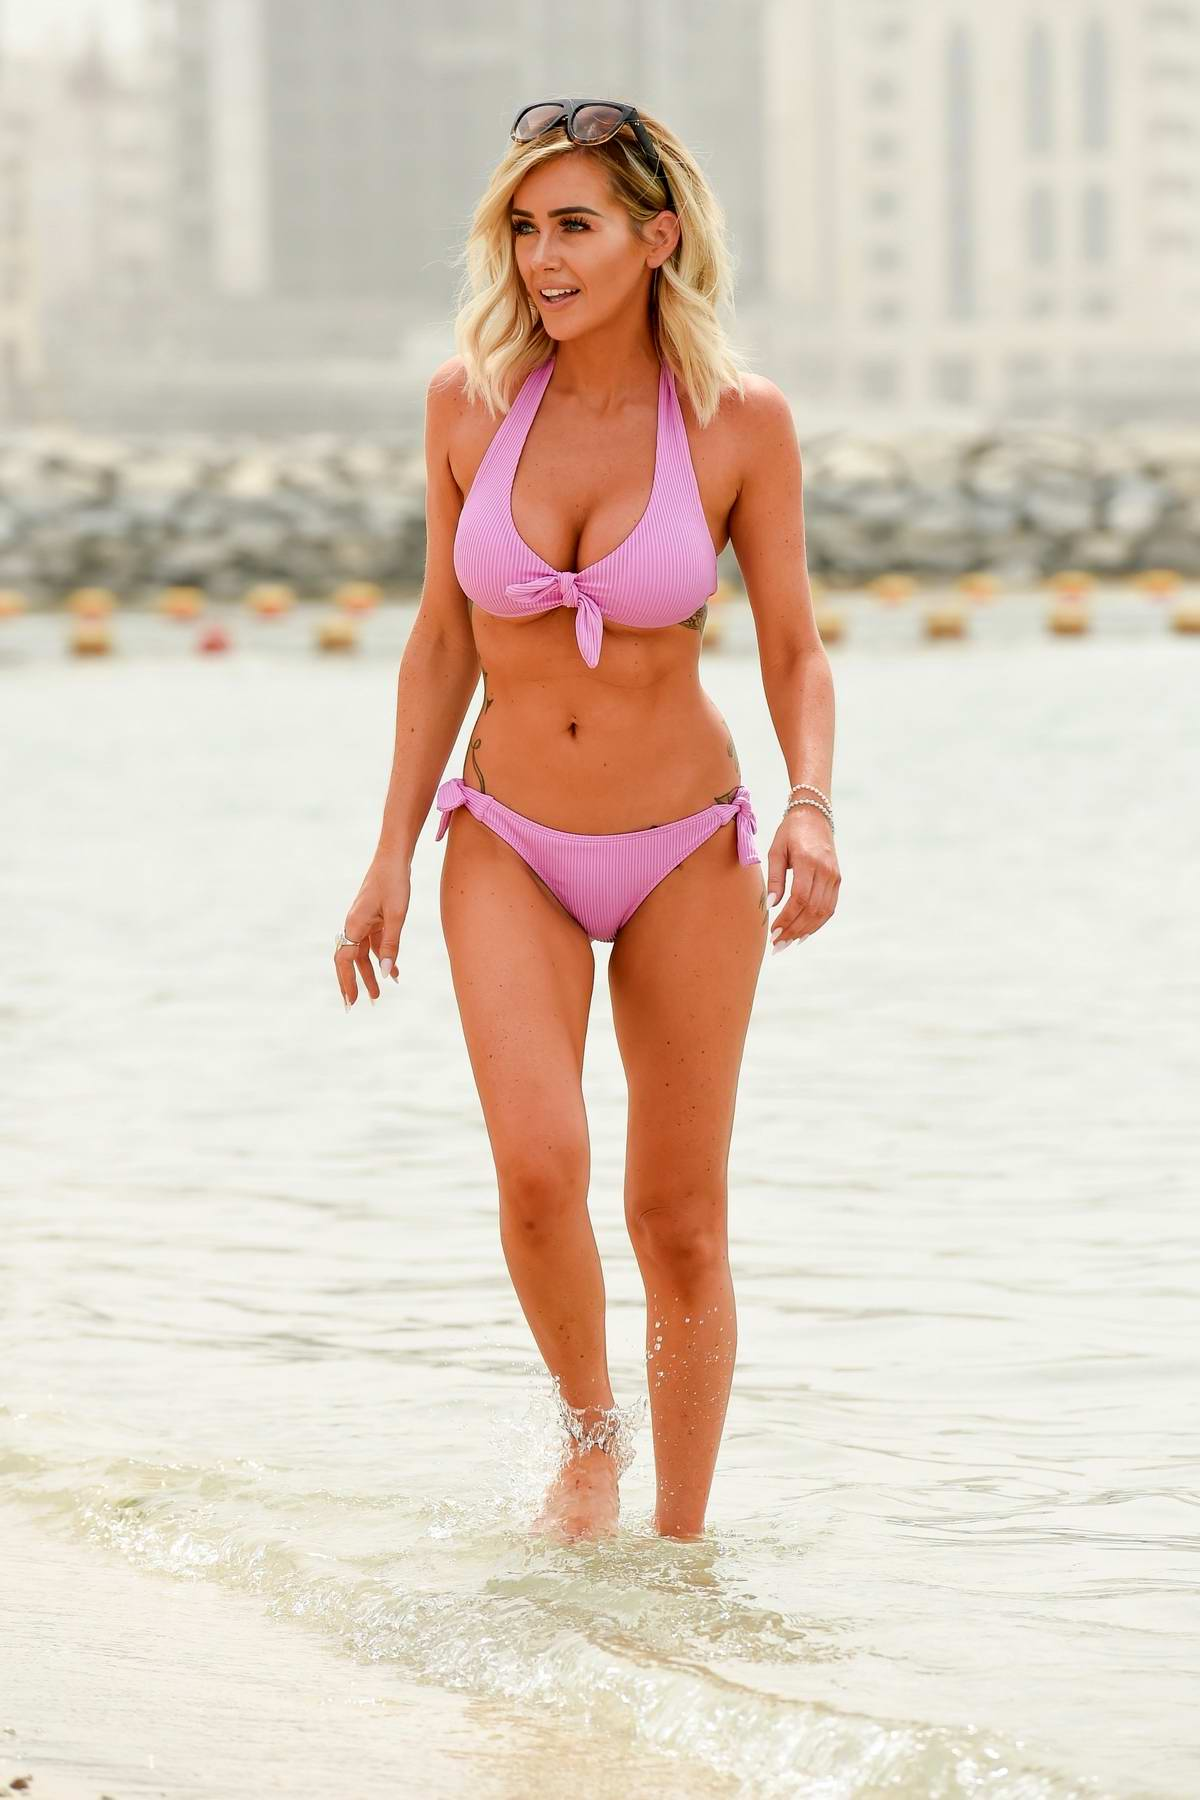 Laura Anderson wears pink bikini as she hits the beach in Dubai, UAE